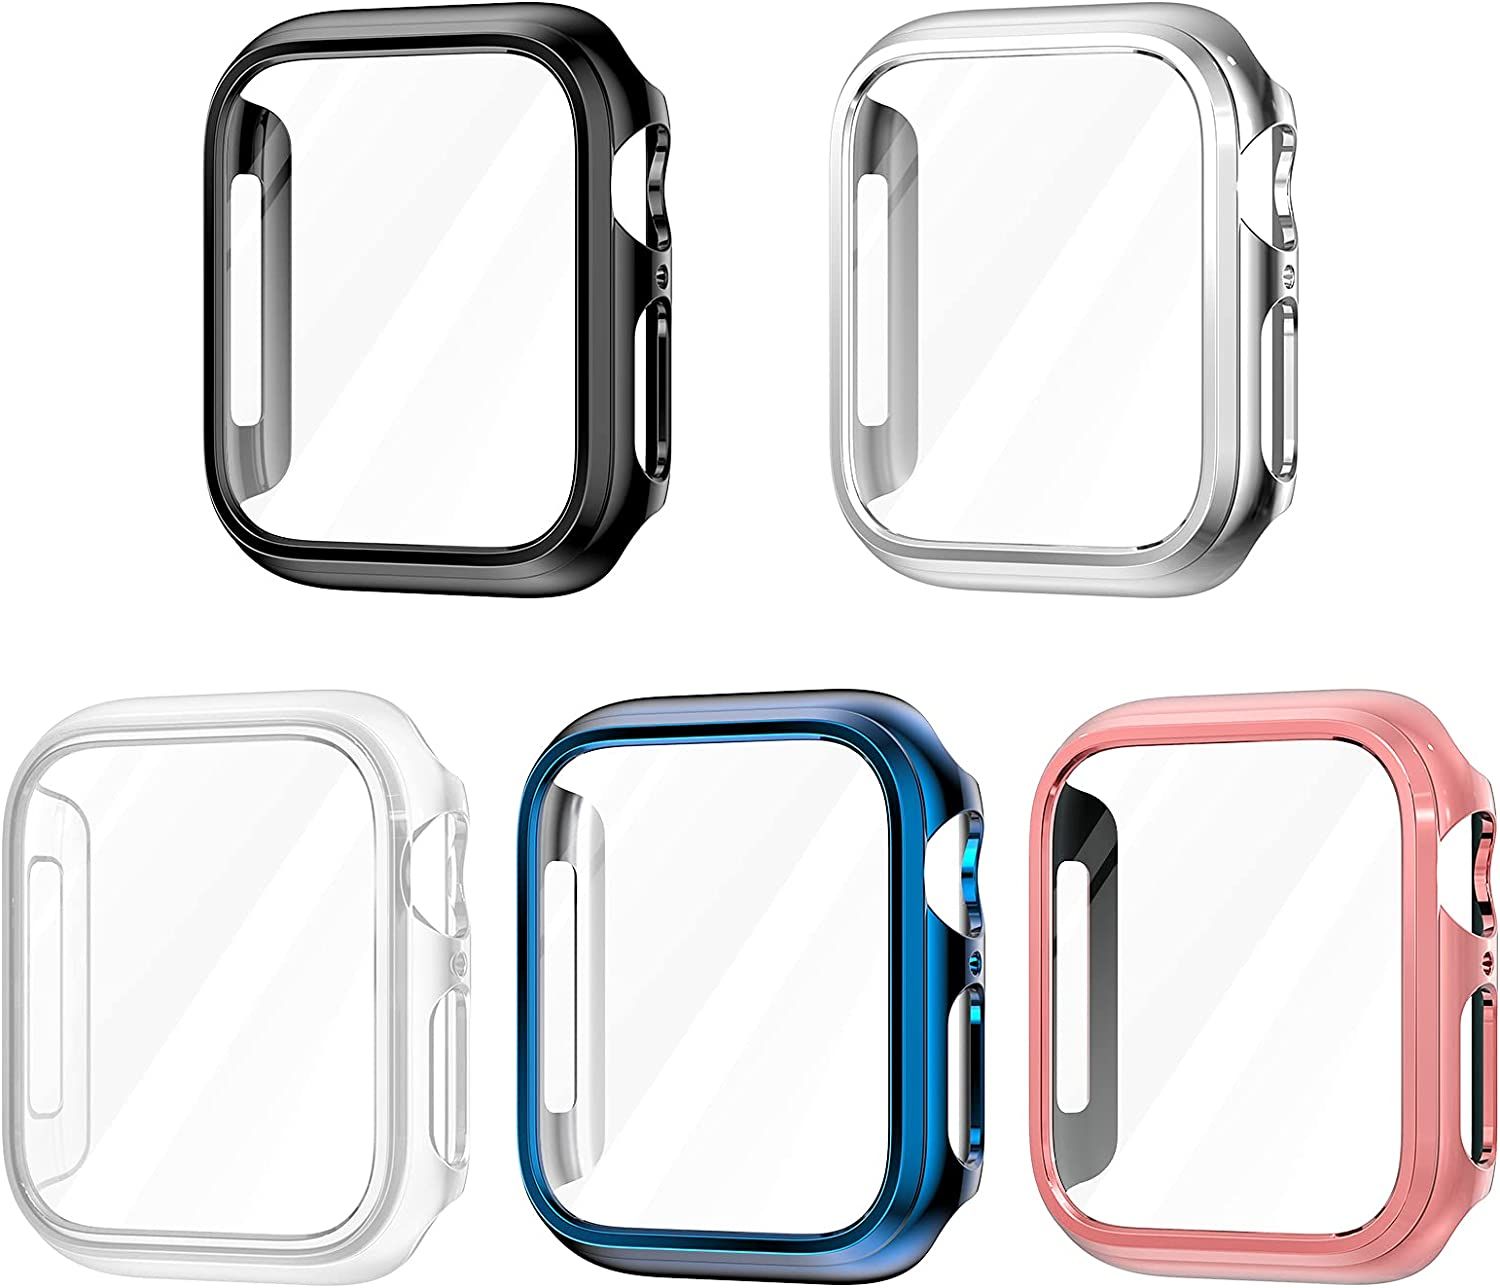 [5 Pack] MRAIN-H for Apple Watch Case 44mm 40mm, Hard PC with Ultra-Thin PET Screen Protector for Apple Watch Series 6/5/4/SE, Black, Silver, Clear, Blue, Rose Gold